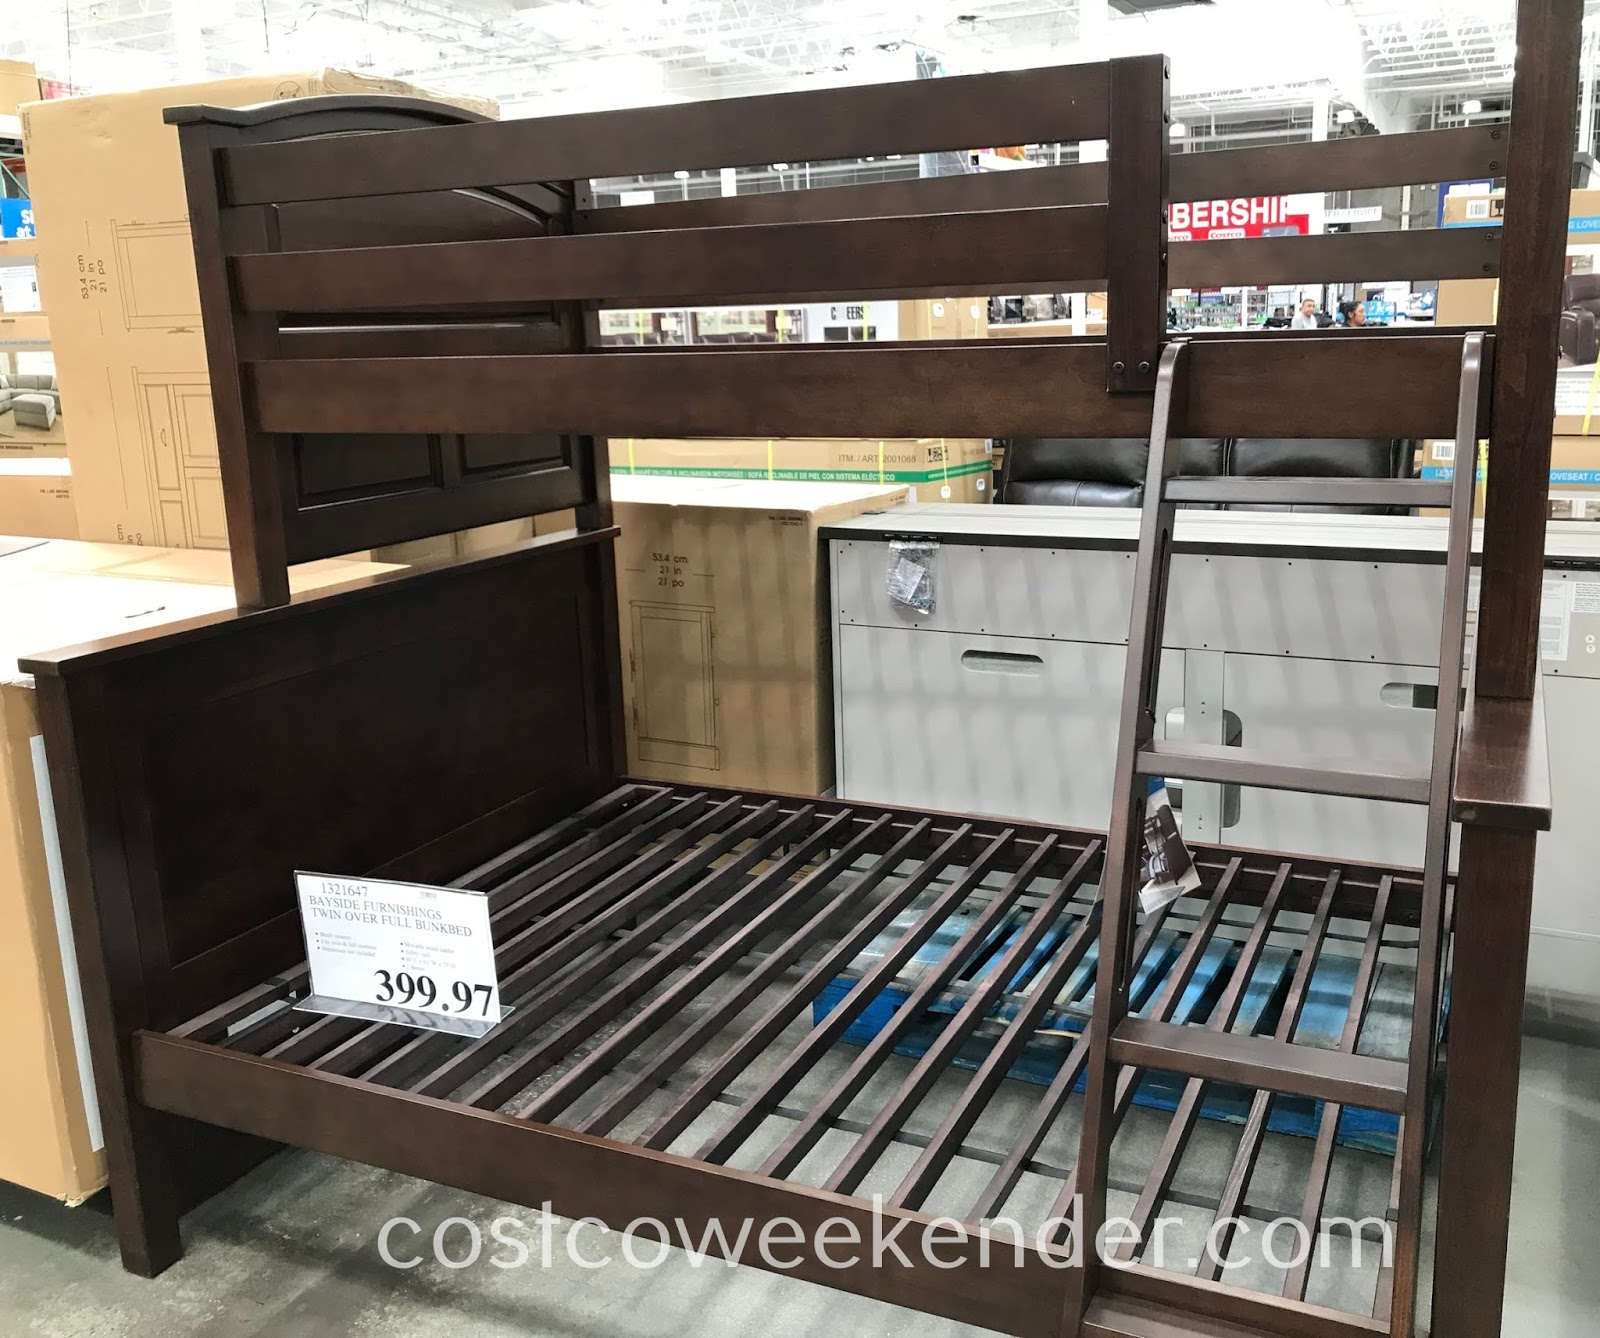 If you have an older and younger child, consider the Whalen Bayside Furnishings Twin Over Full Bunk Bed